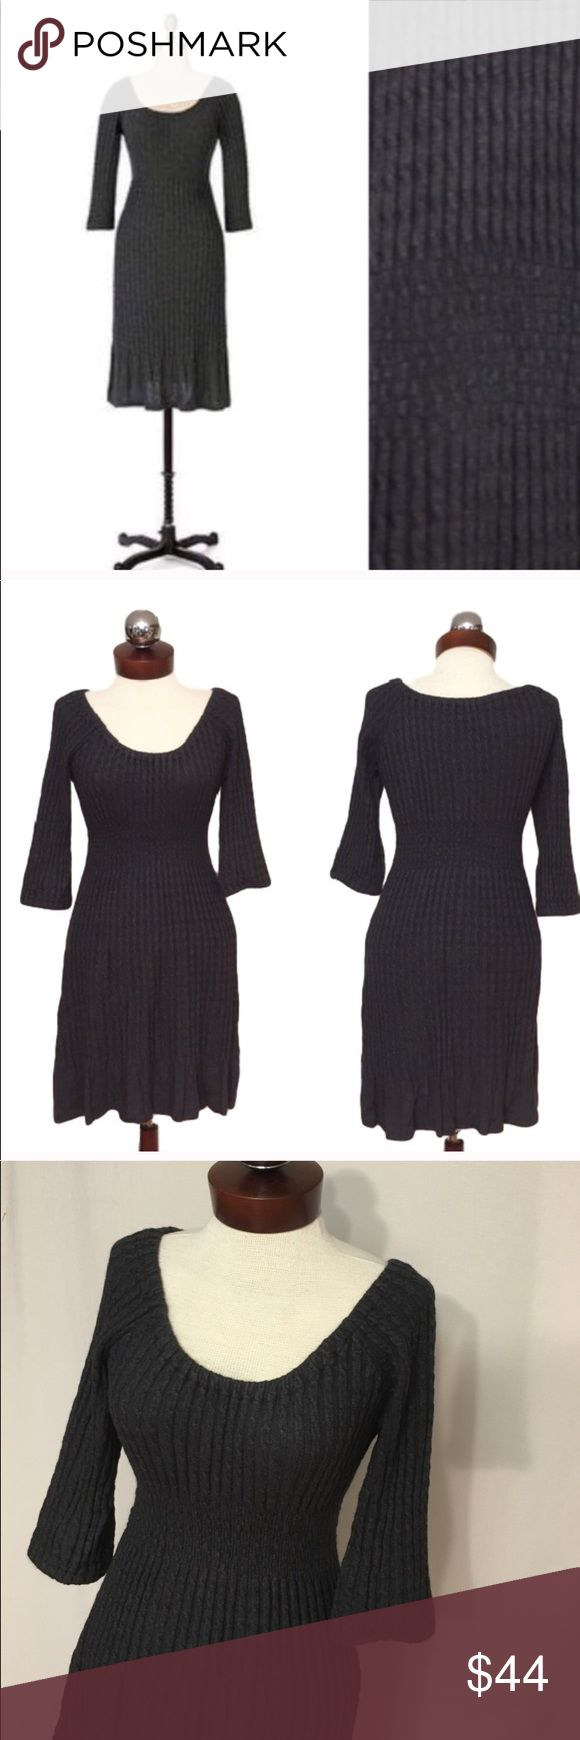 Anthropologie MAPLE Mazzola sweater dress charcoal There is a light all over fuzzing, likely due to the angora content. I believe this is original and not a sign of wear. Otherwise, excellent condition! Form fitting with a ton of stretch-  Unstretched-stretched Bust 22-38 Waist 33-46 Hip 40-64  Length 36                                                         Slim cables and puffed half-sleeves lend a modern fit to Maple's cozy frock. Cotton, angora Dry clean Style No. 830095 Anthropologie…